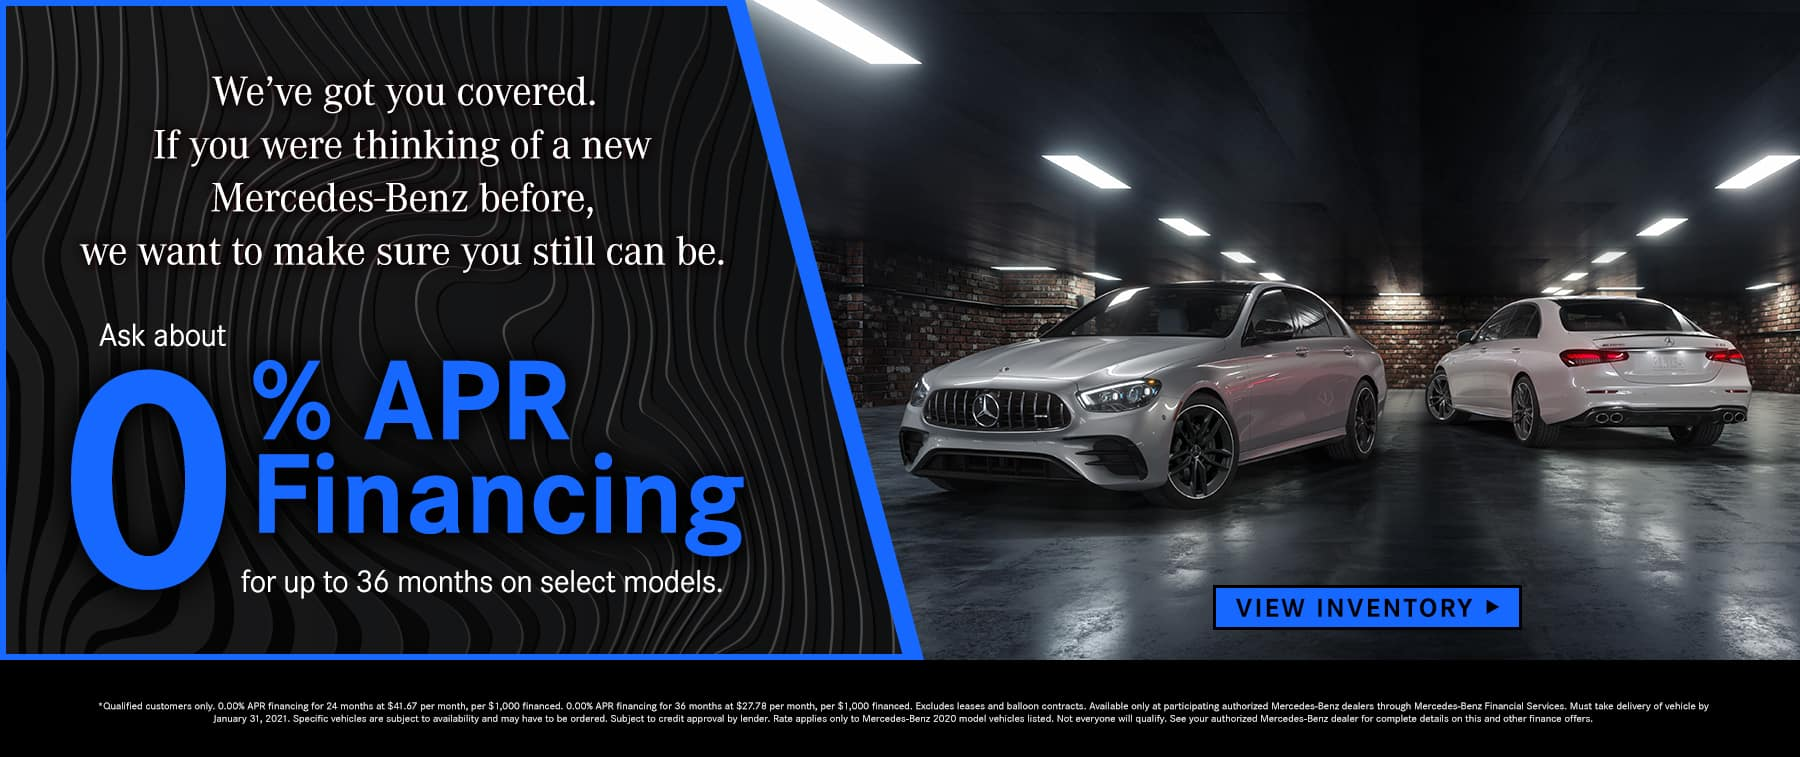 Ask about 0% APR Financing for up to 36 months on select models.